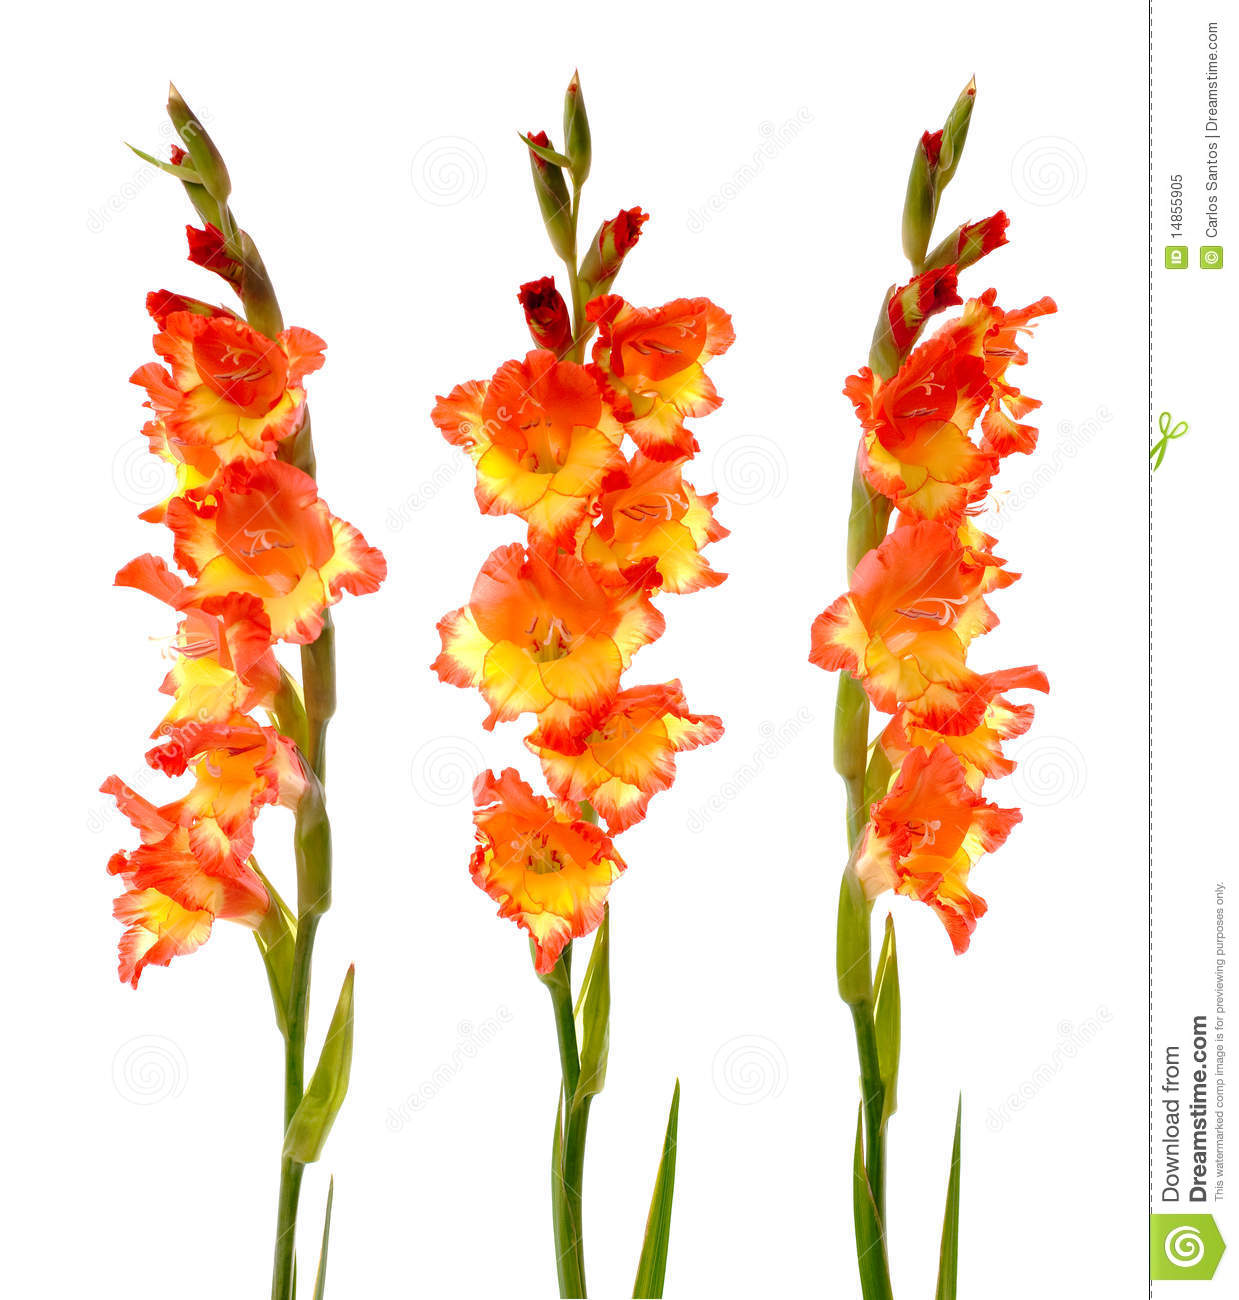 Red and yellow gladiolus royalty free stock photo image 14855905